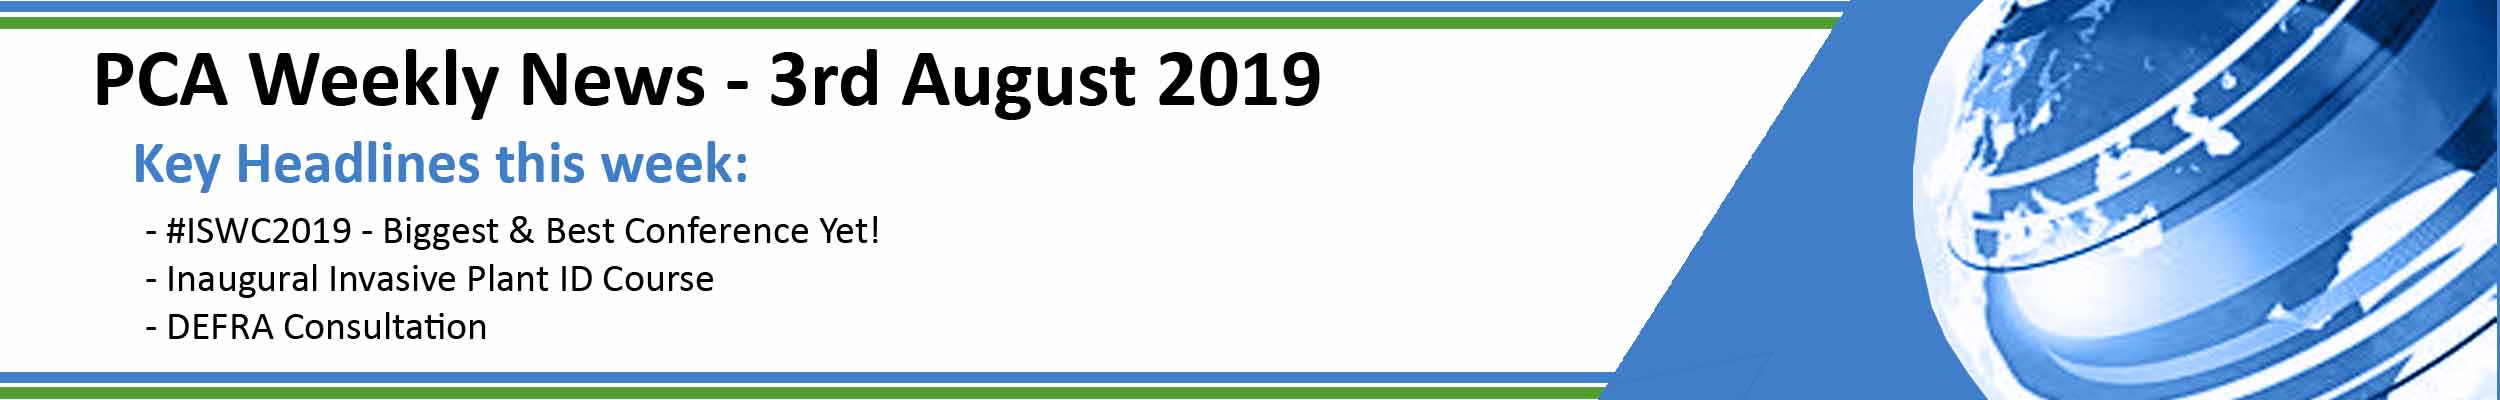 PCA Weekly News - 3rd August 2019